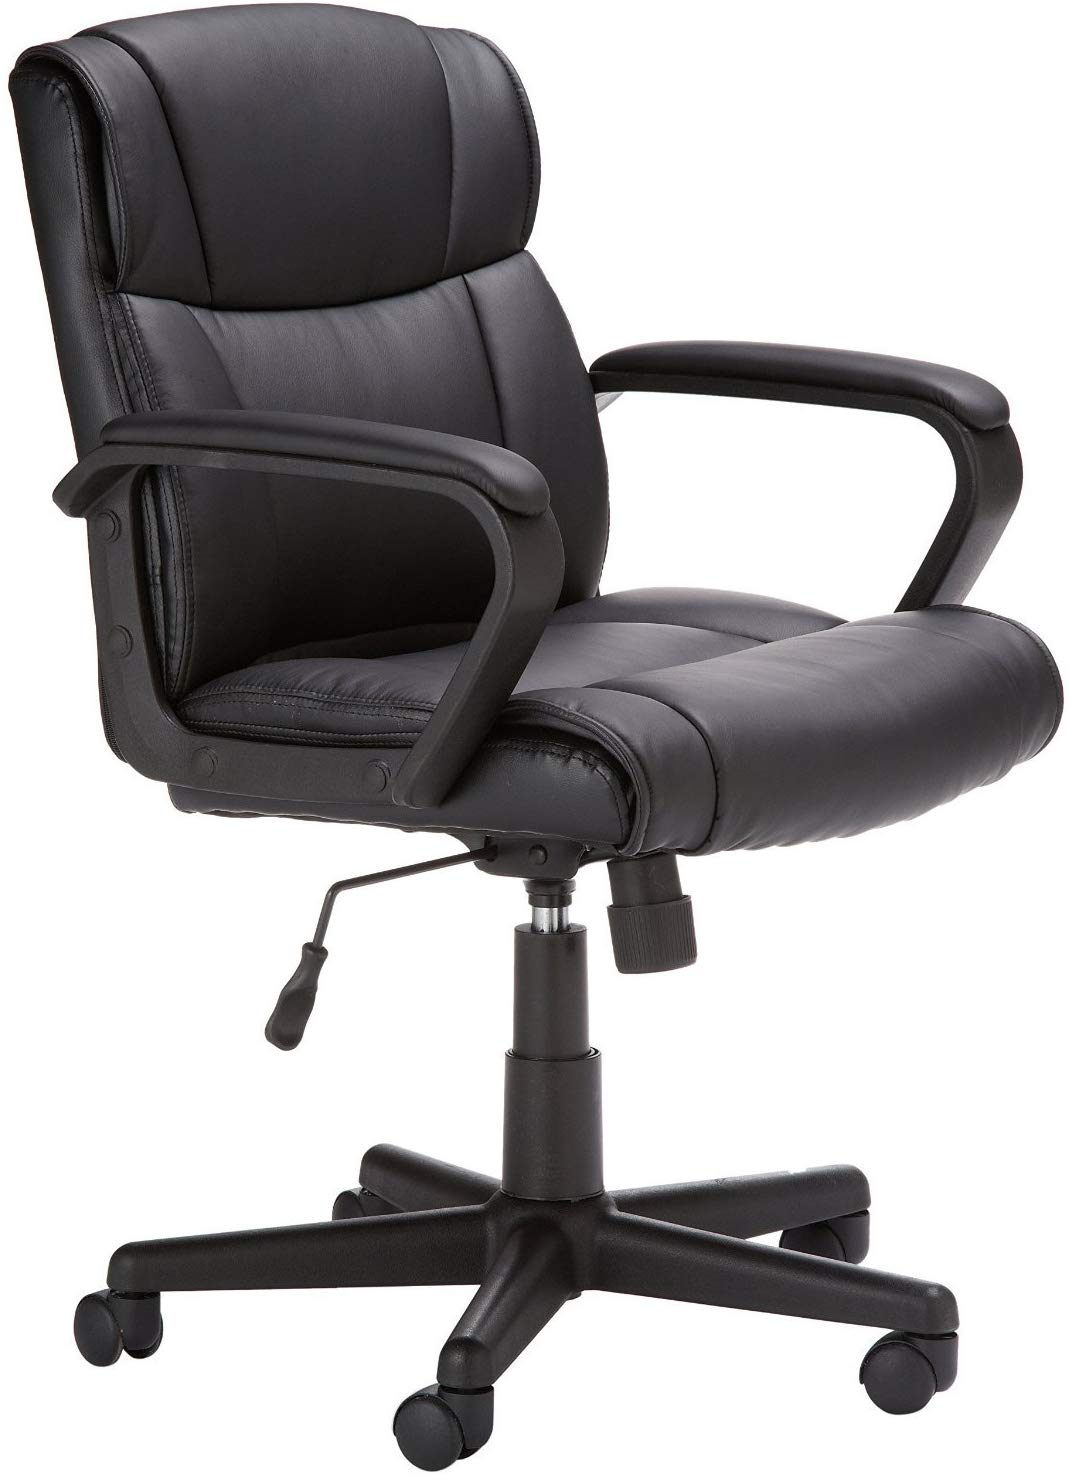 AmazonBasics Classic Leather-Padded Mid-Back Office Desk Chair with Armrest- Black